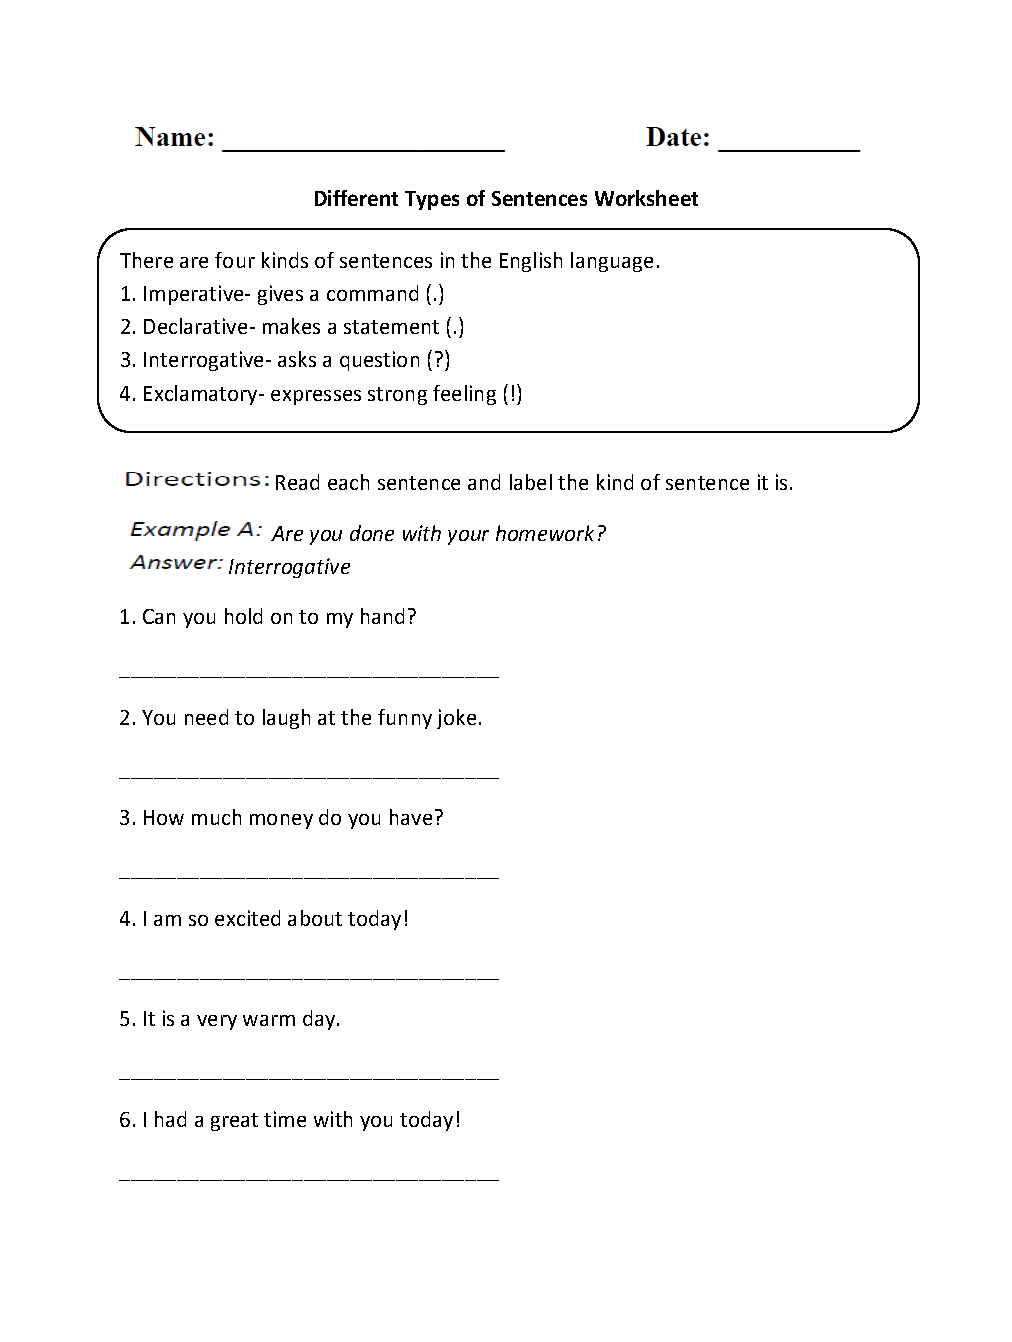 Worksheets 4 Types Of Sentences Worksheet sentences worksheets types of different worksheet